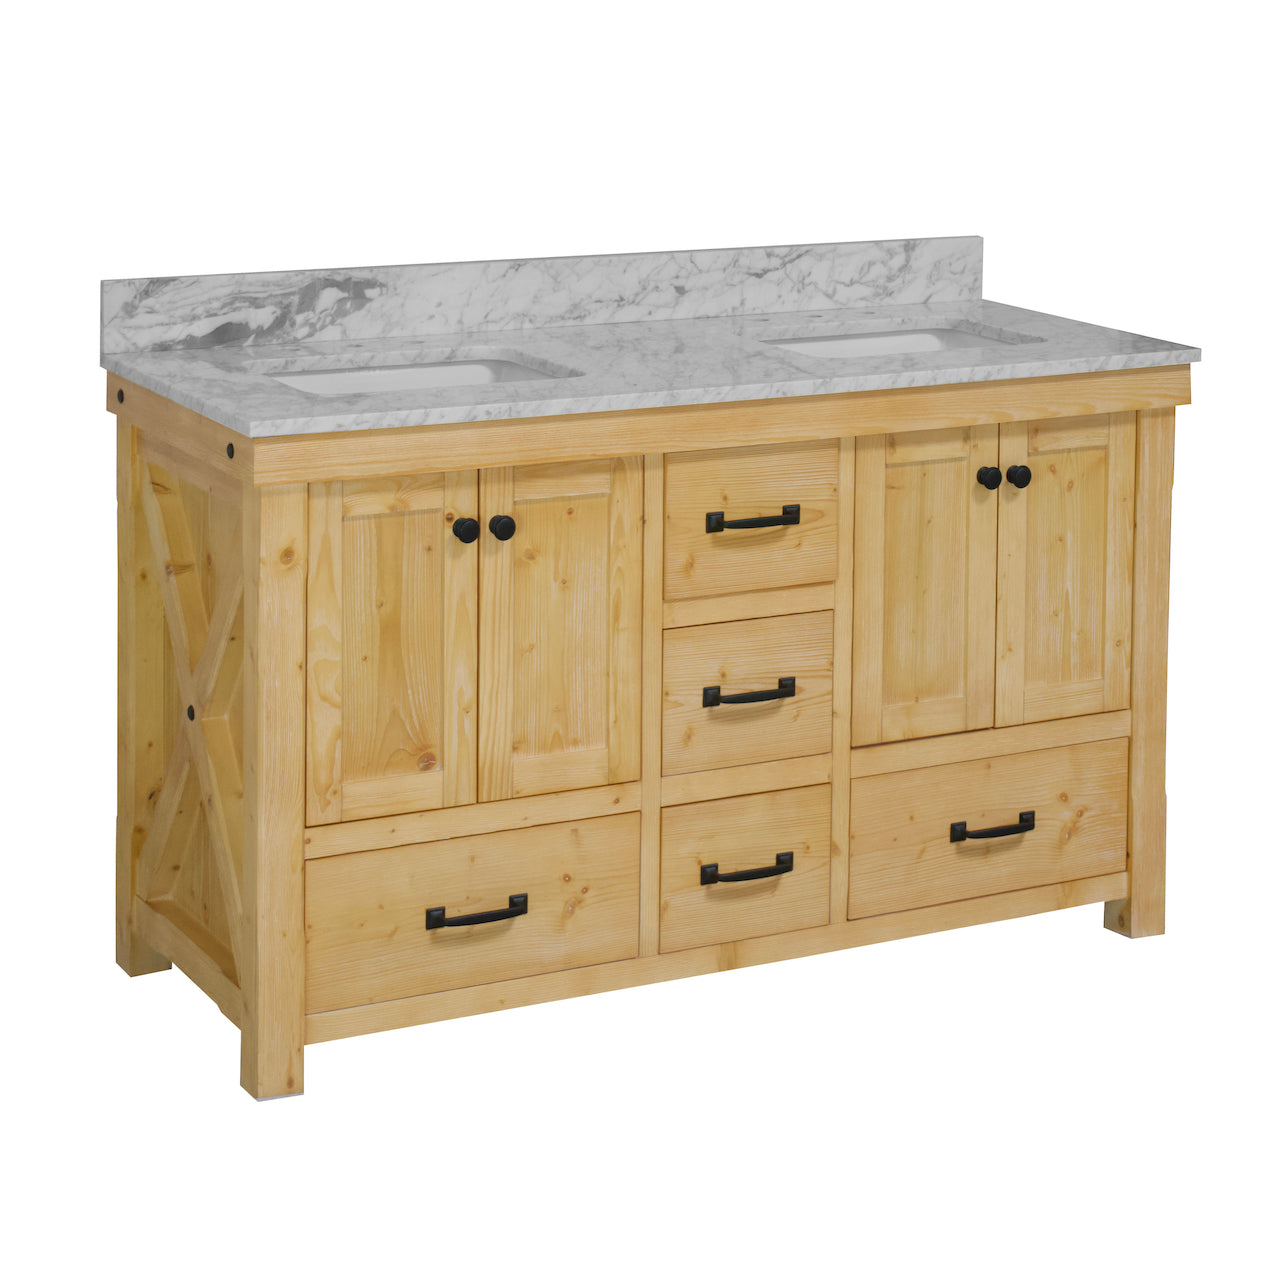 Tuscany 60 Rustic Double Sink Bathroom Vanity With Carrara Marble Top Kitchenbathcollection